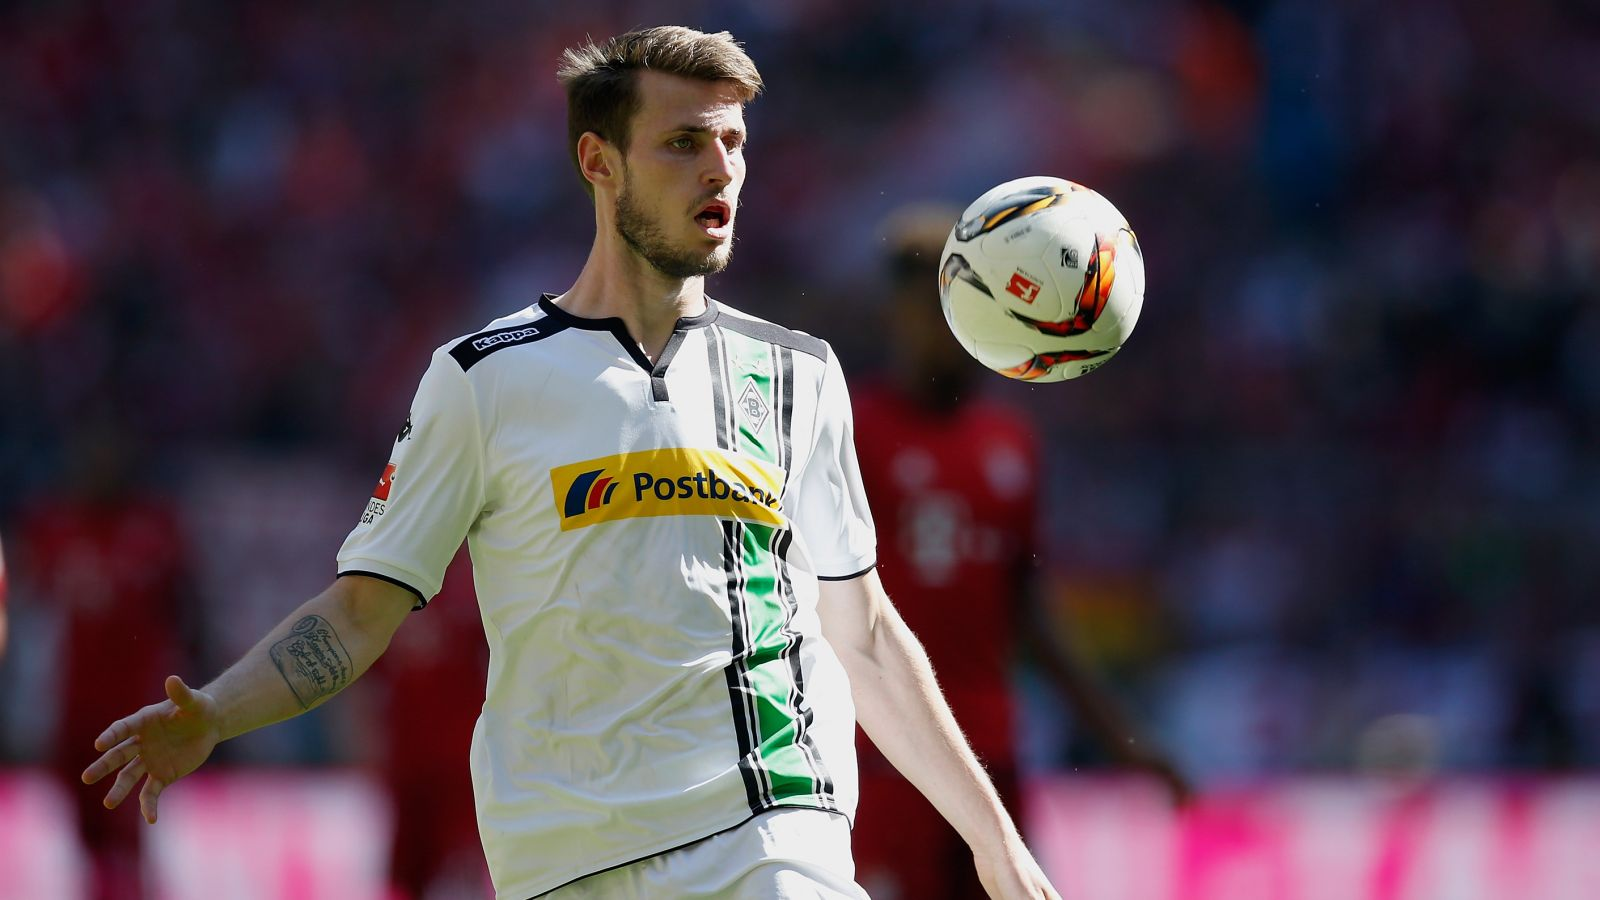 West Ham to sign Gladbach midfielder Nordtveit on free transfer